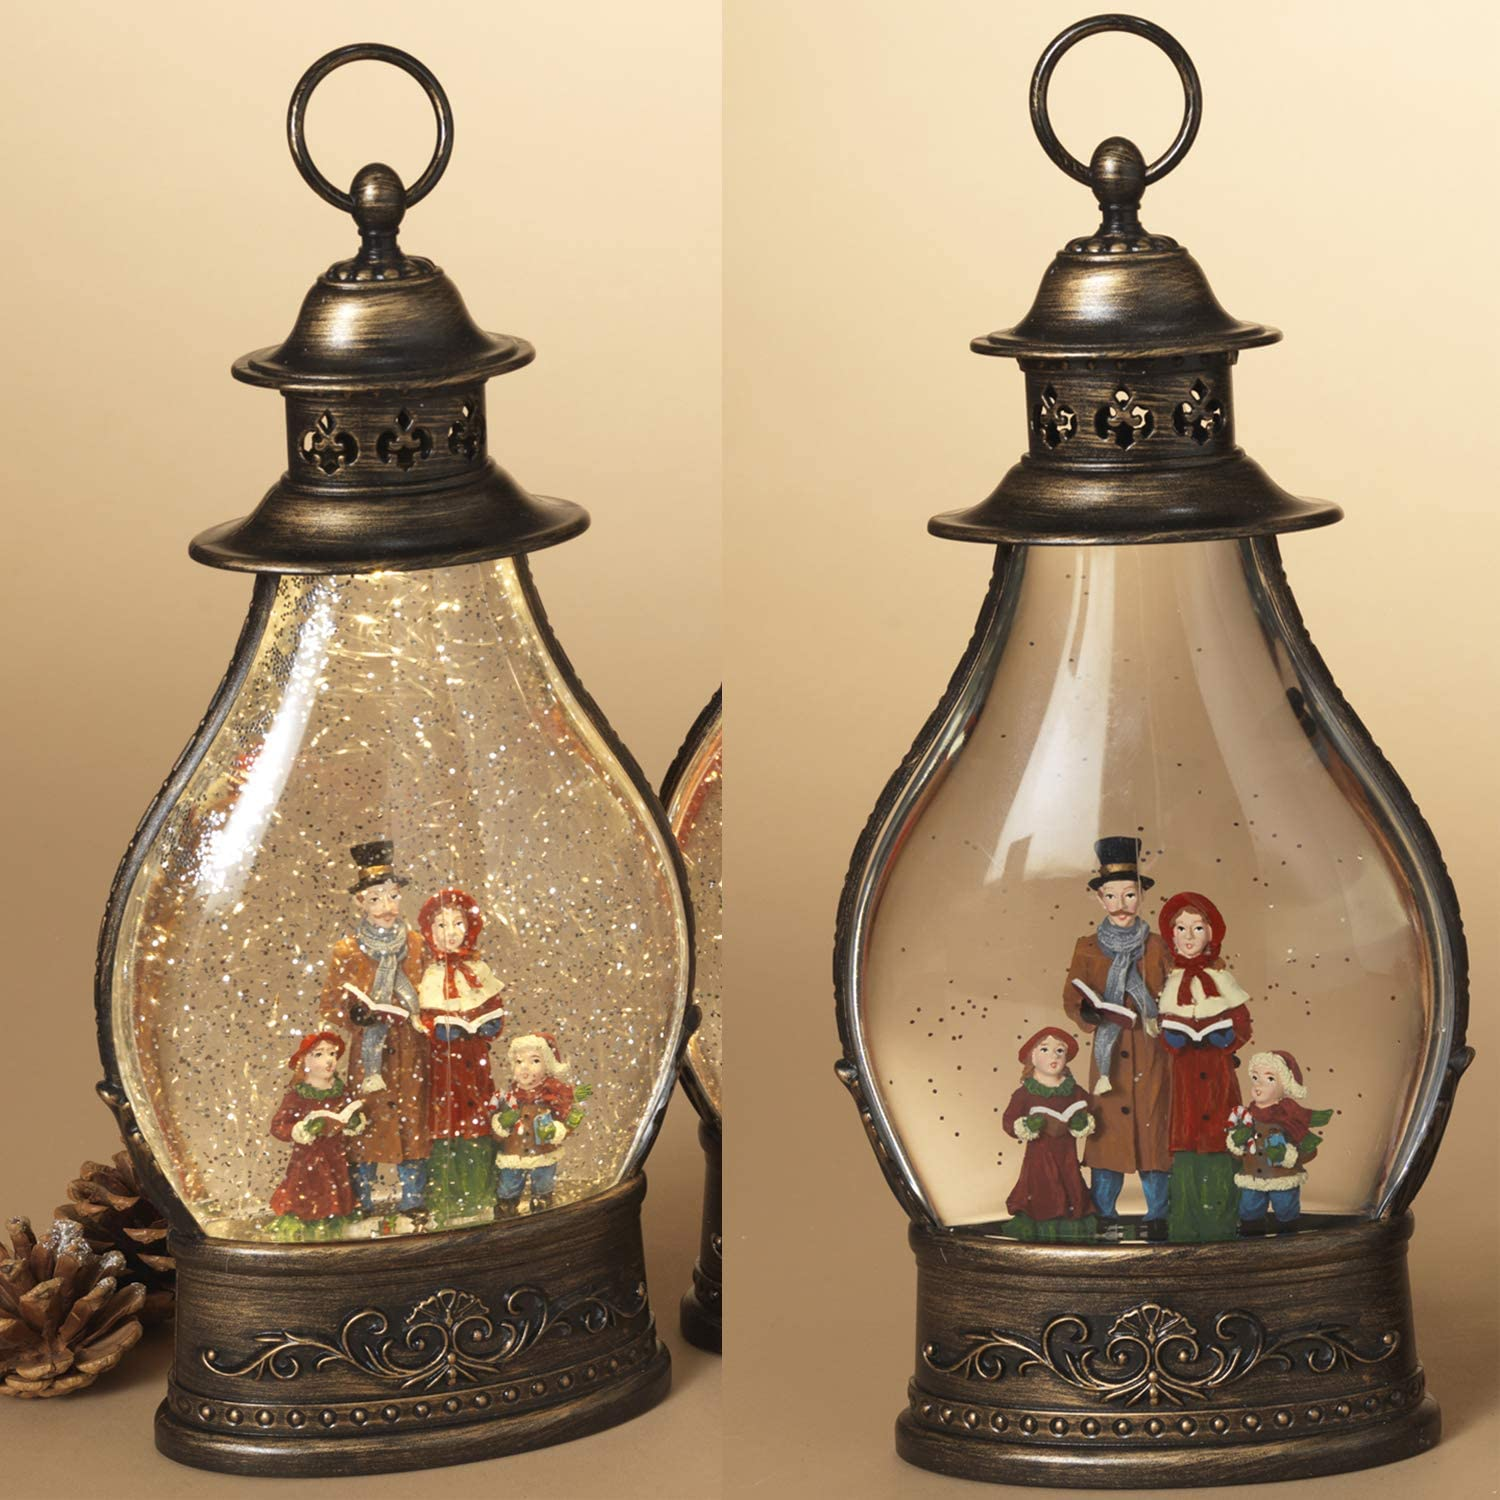 15-Inch Vintage Light Up Snow Globe Water Lantern with Festive Christmas Caroler Figurines Tabletop or Hanging Holiday Decoration Lighted Winter Home Decor